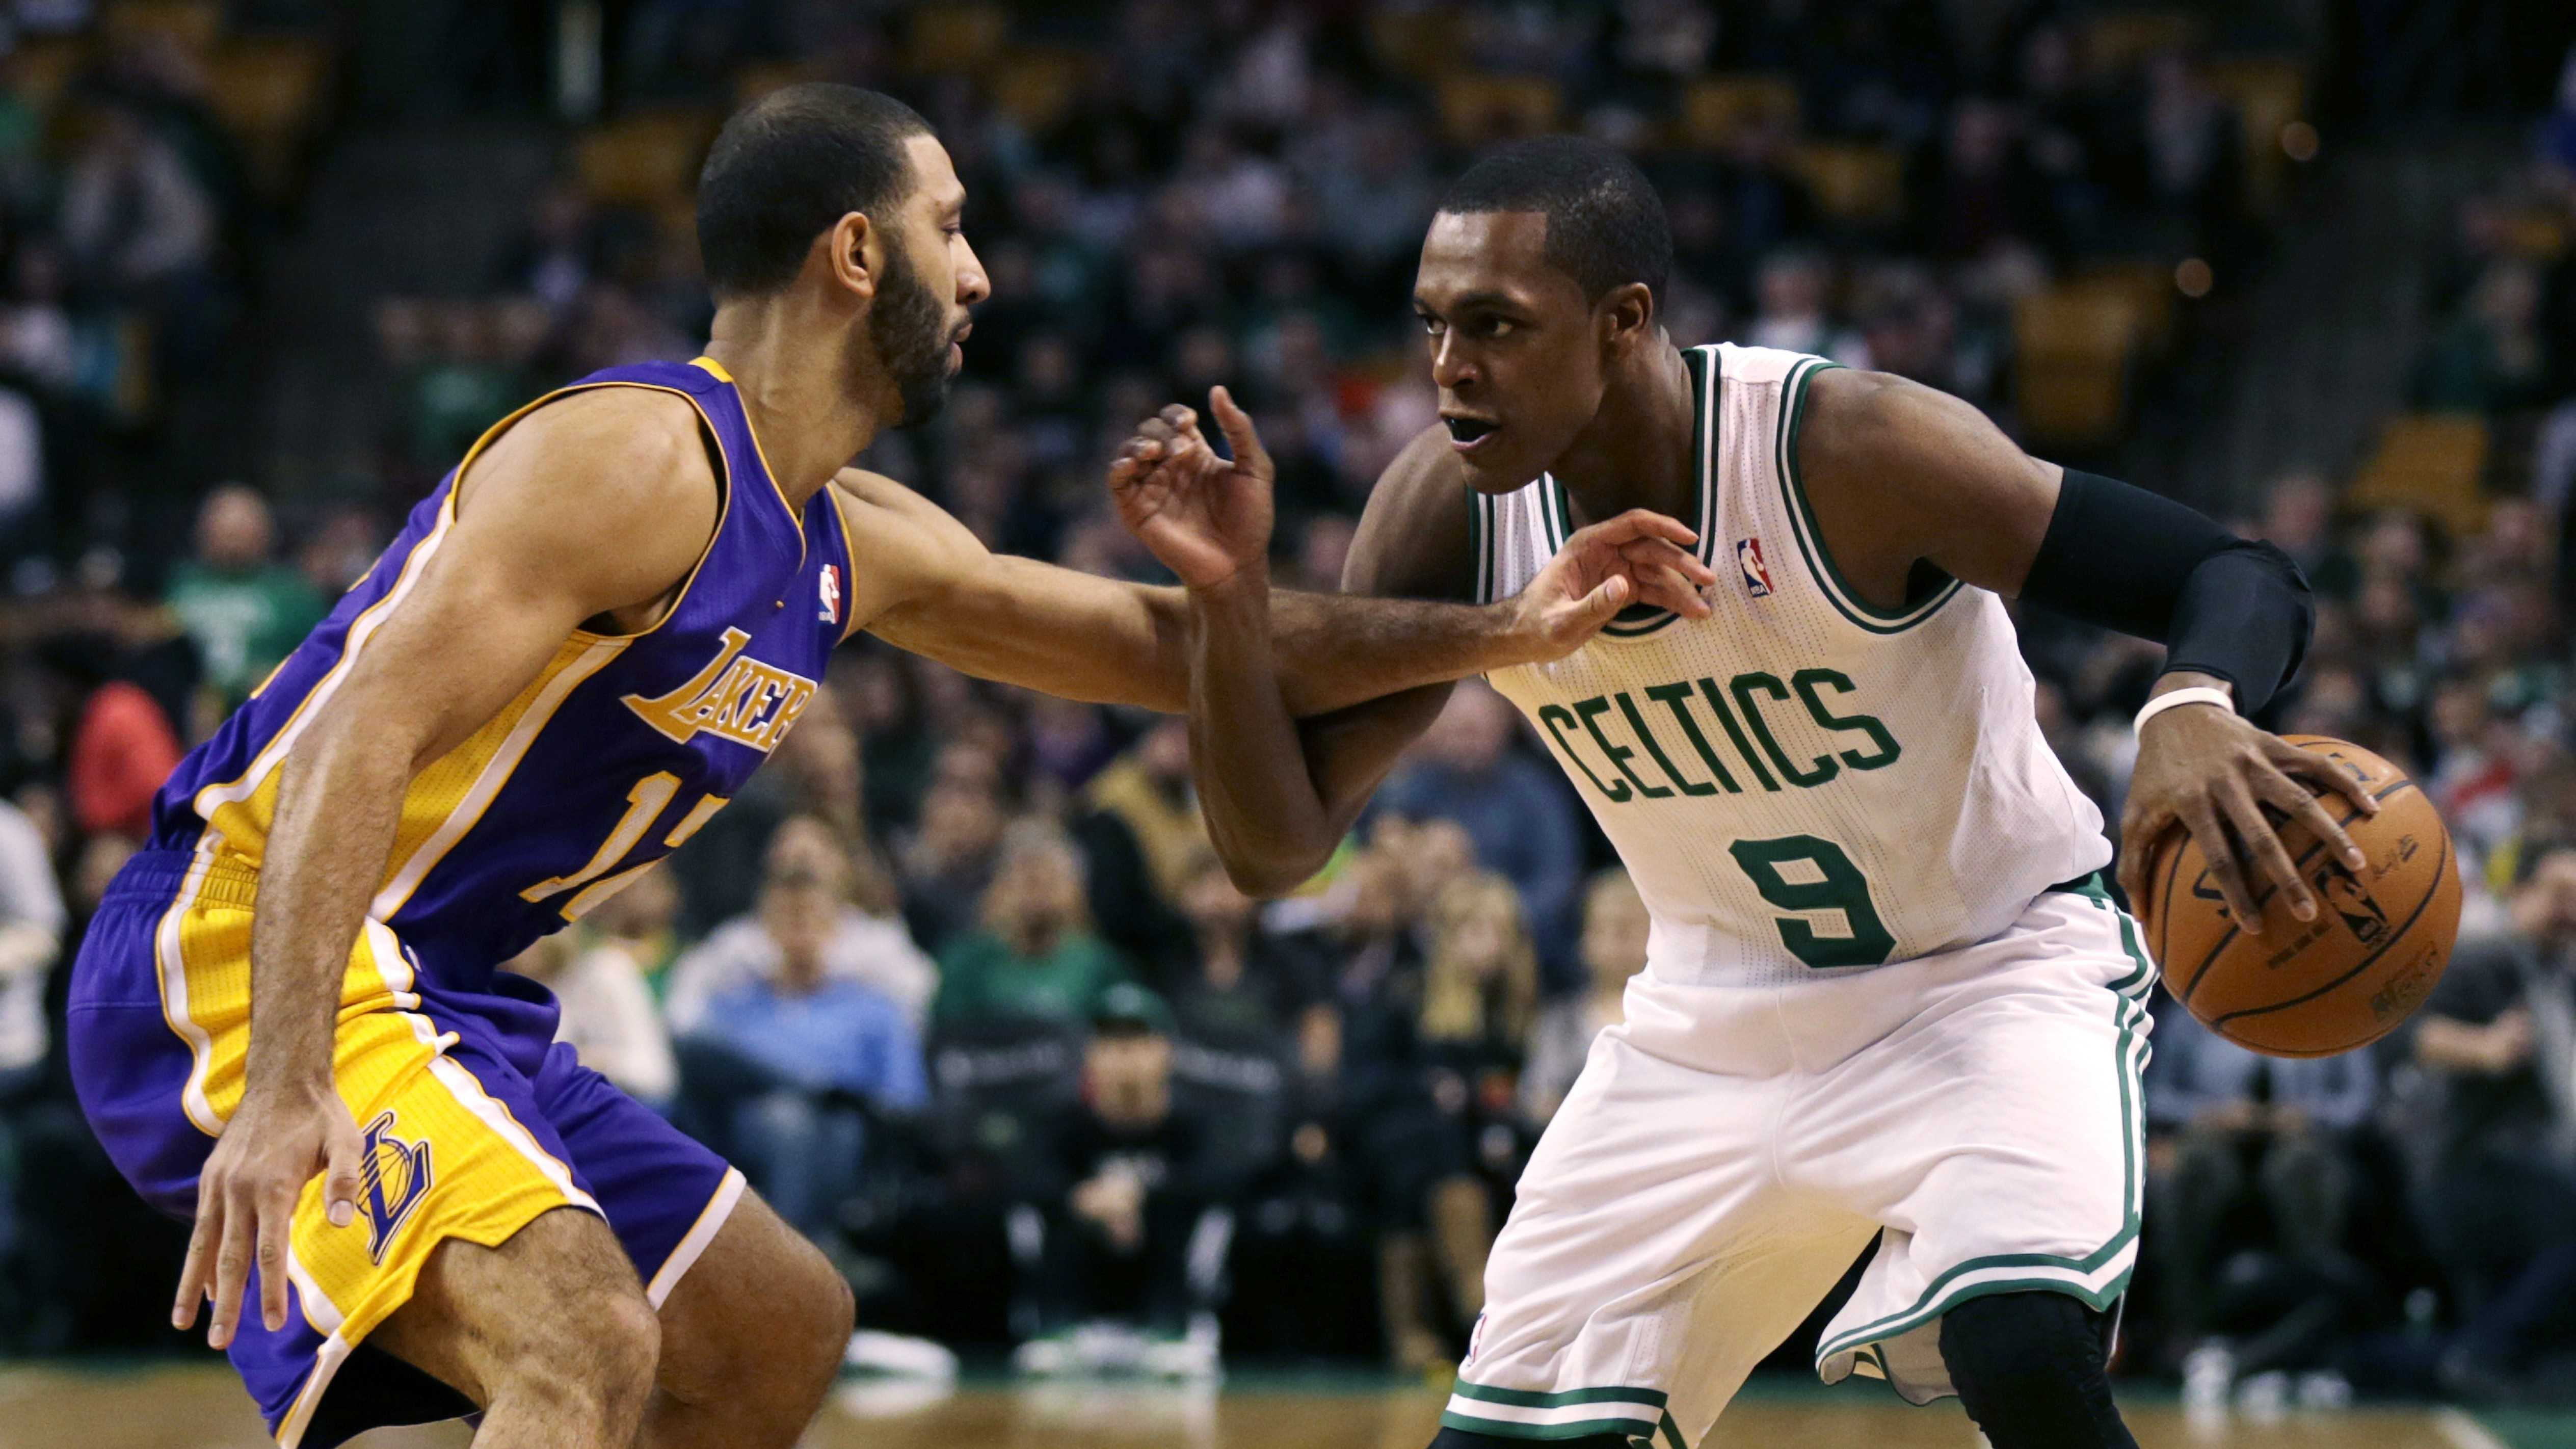 Boston Celtics guard Rajon Rondo (9) tries to drive past Los Angeles Lakers point guard Kendall Marshall, left, during the first quarter of an NBA basketball game in Boston, Friday, Jan. 17, 2014. Rondo returned to the court for the first time this season, after undergoing surgery on his right knee.